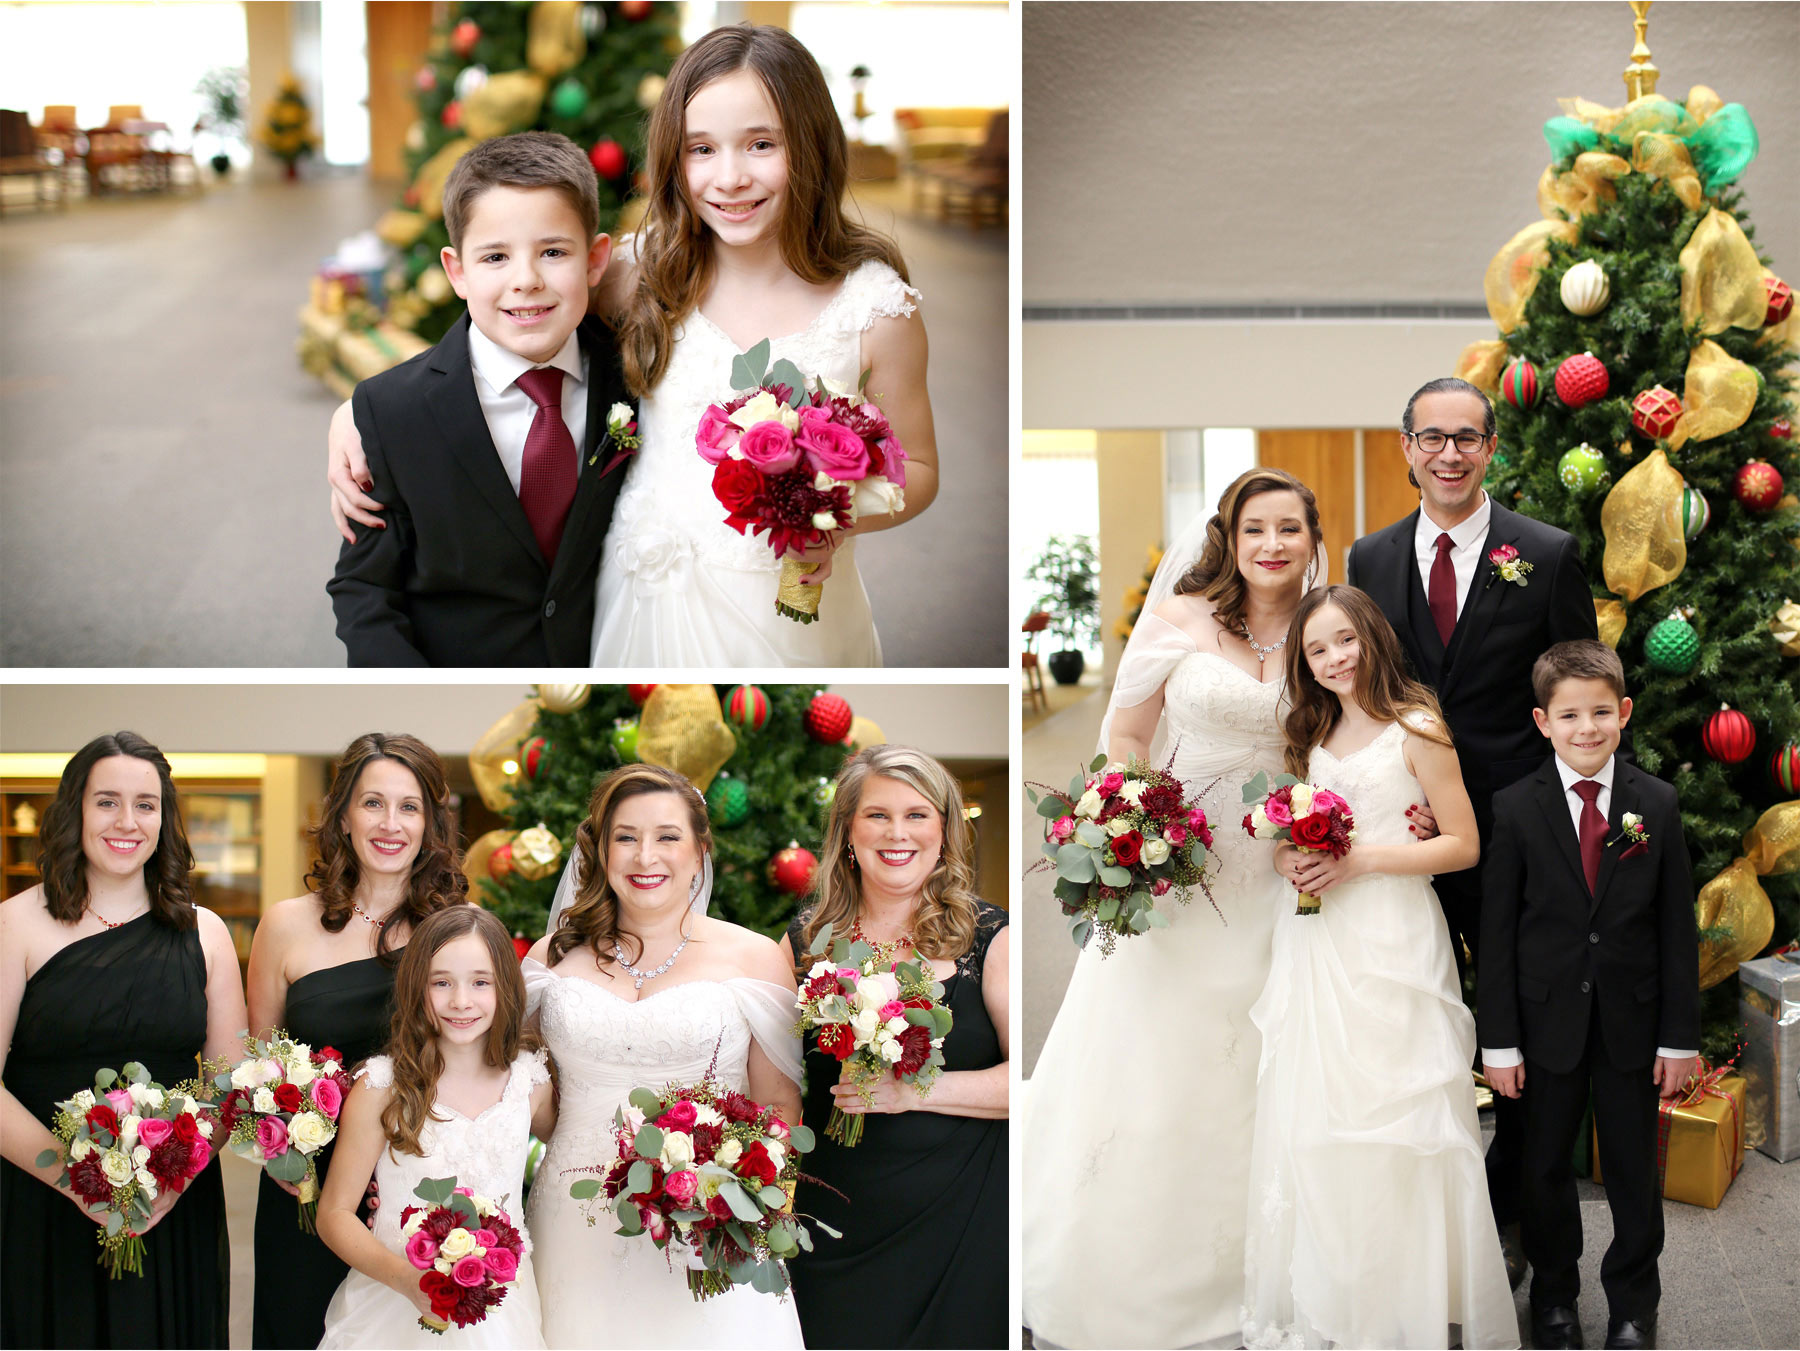 09-Edina-Minnesota-Wedding-Photographer-by-Andrew-Vick-Photography-Winter-Saint-Patricks-Catholic-Church-Bride-Groom-Bridesmaids-Flower-Girl-Ring-Bearer-Christmas-Tree-Decorations-Vintage-Elizabeth-and-Brian.jpg